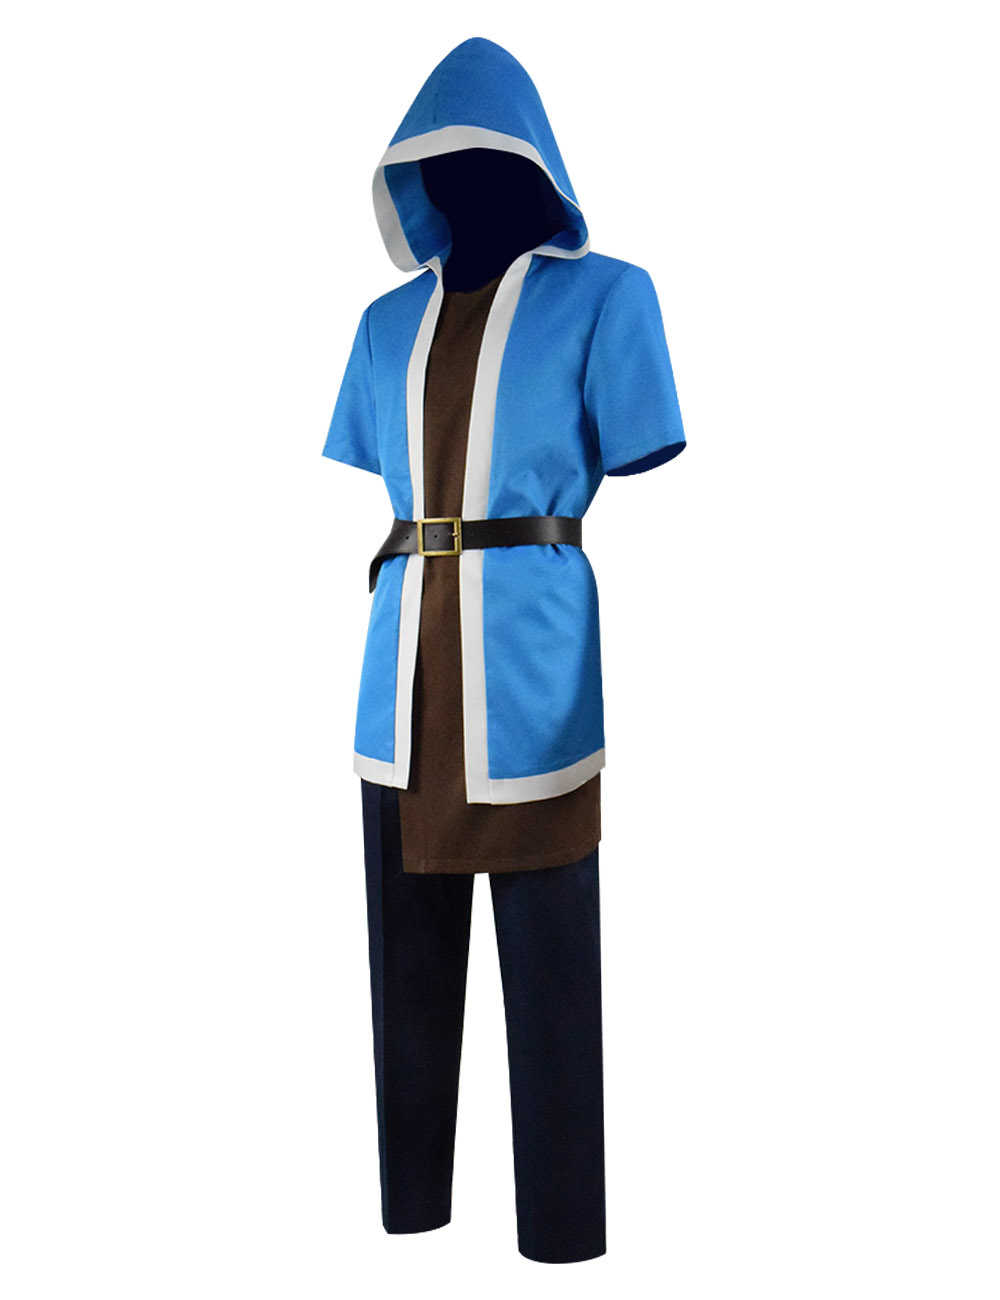 Affrontement Clans assistant Cosplay Costume ensemble complet tenue Halloween mascarade Cosplay Costume - 4